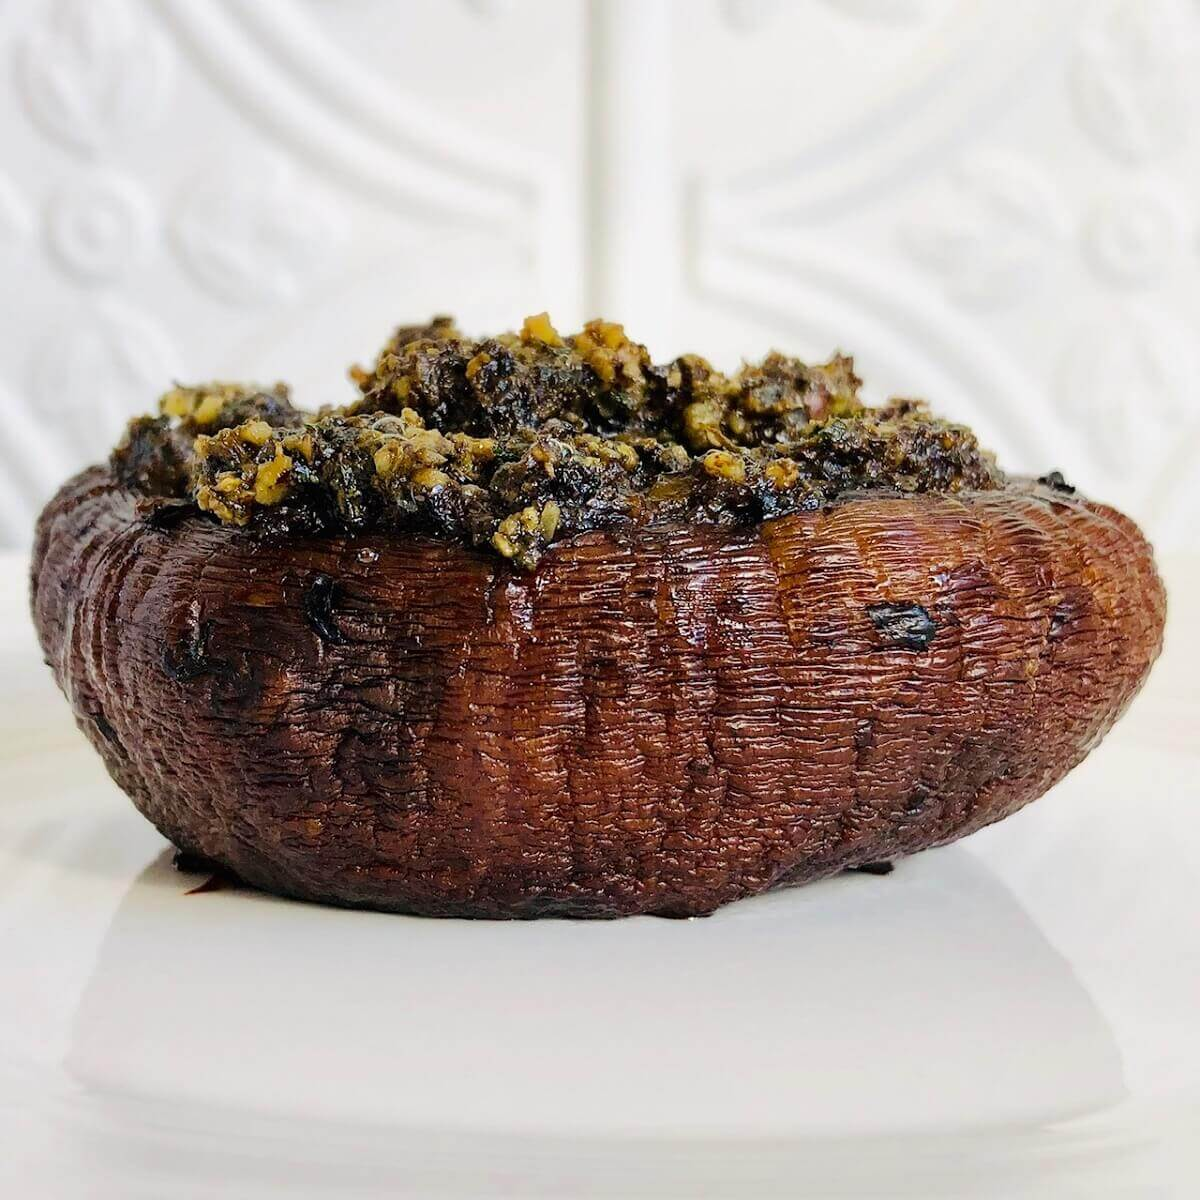 Vegan Stuffed Portobello Mushrooms A Sweet Alternative